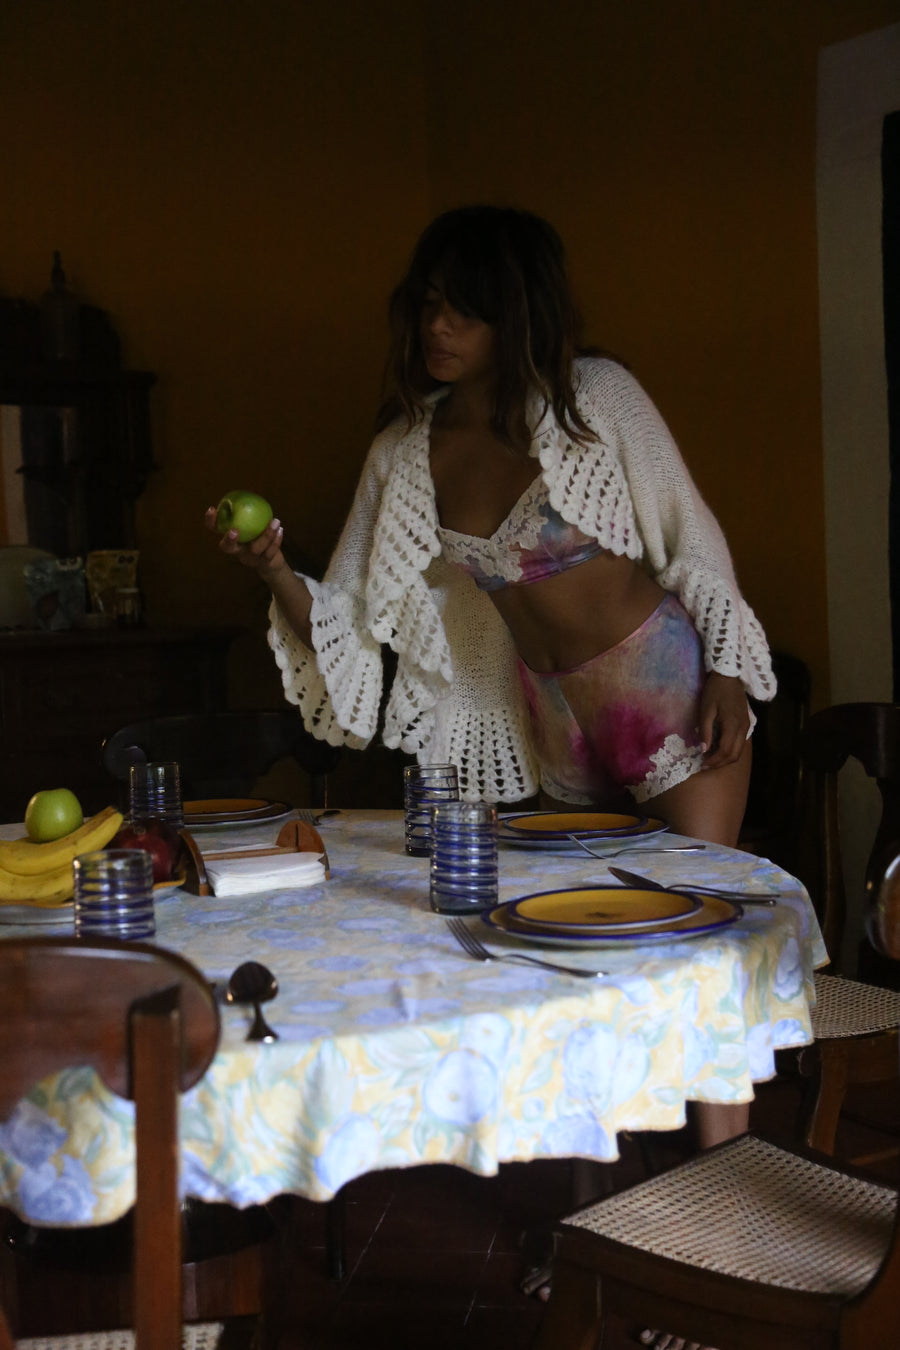 This is a photo of a woman in a ruffled carigan and tie dye print silk bralette and shorts set. She is reaching over a table to grab an apple.